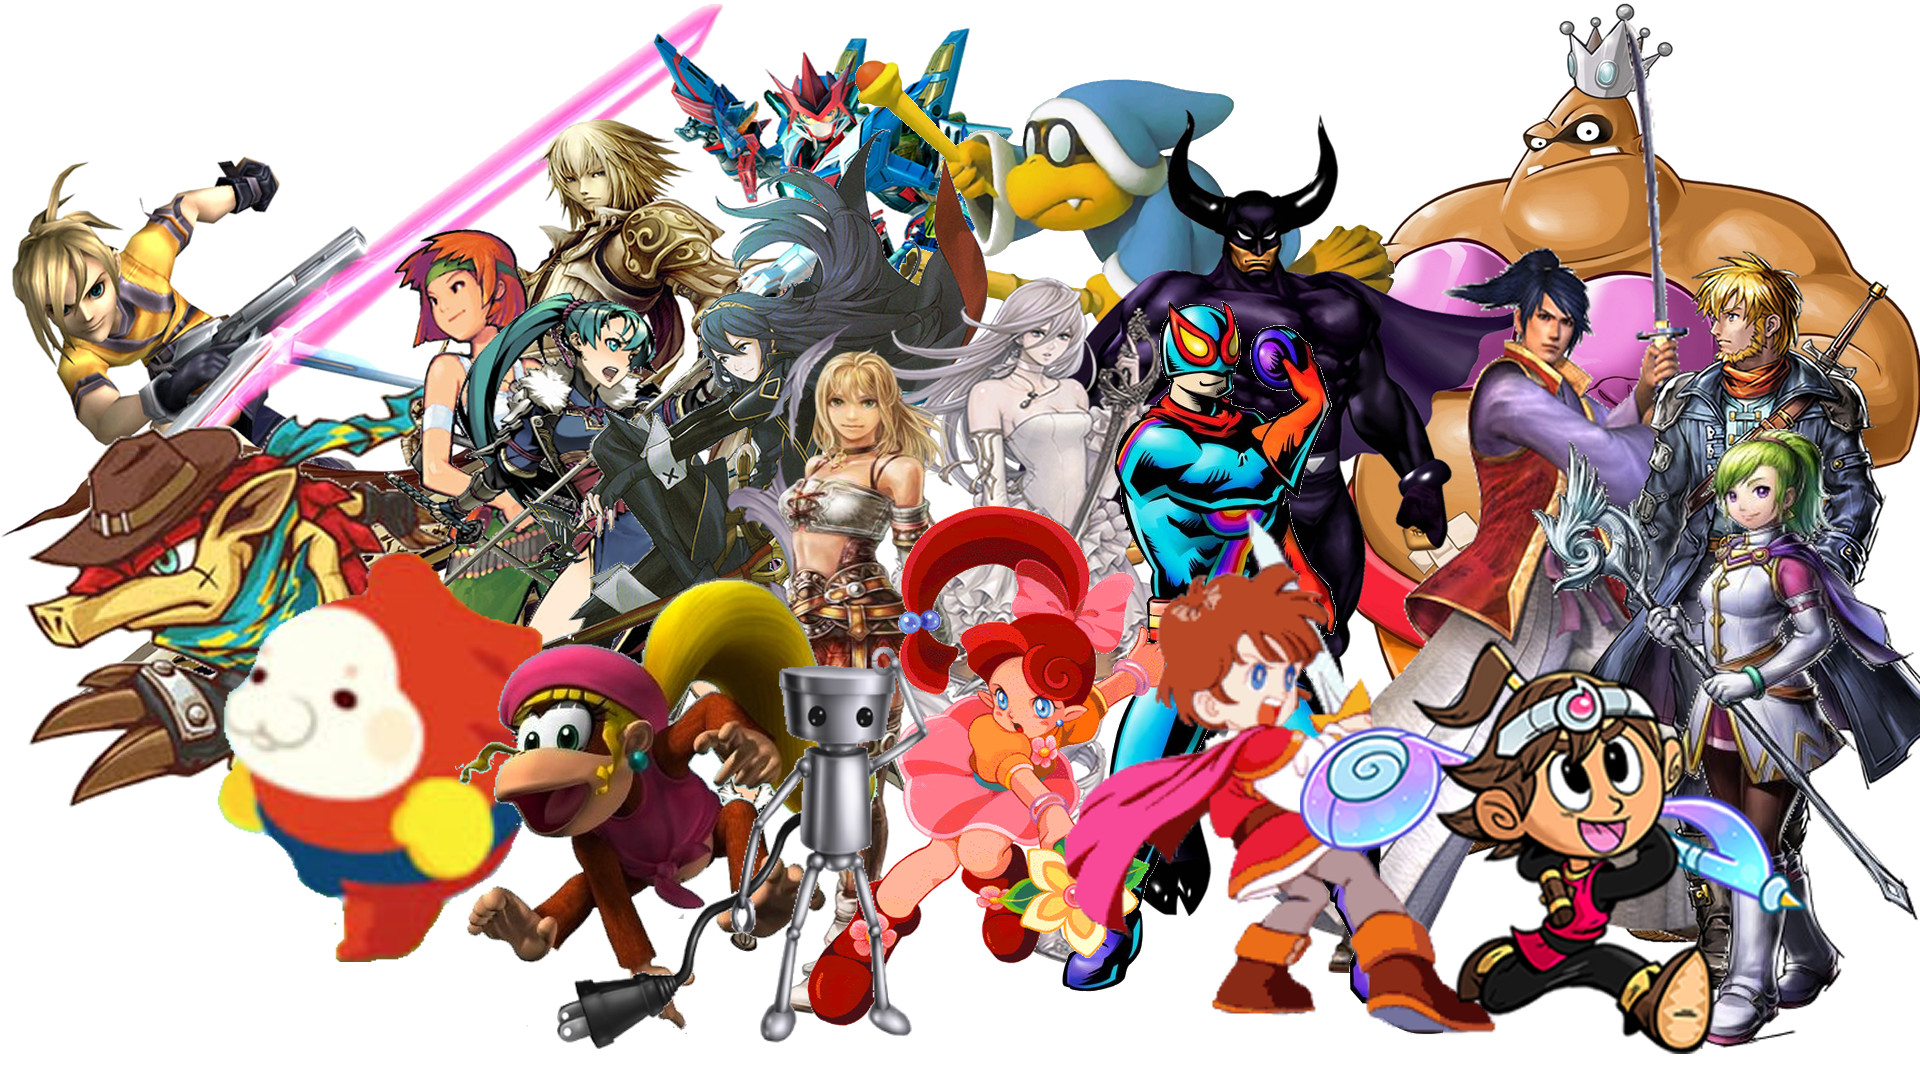 10 Super Smash Bros. For Nintendo 3ds And Wii U HD Wallpapers .